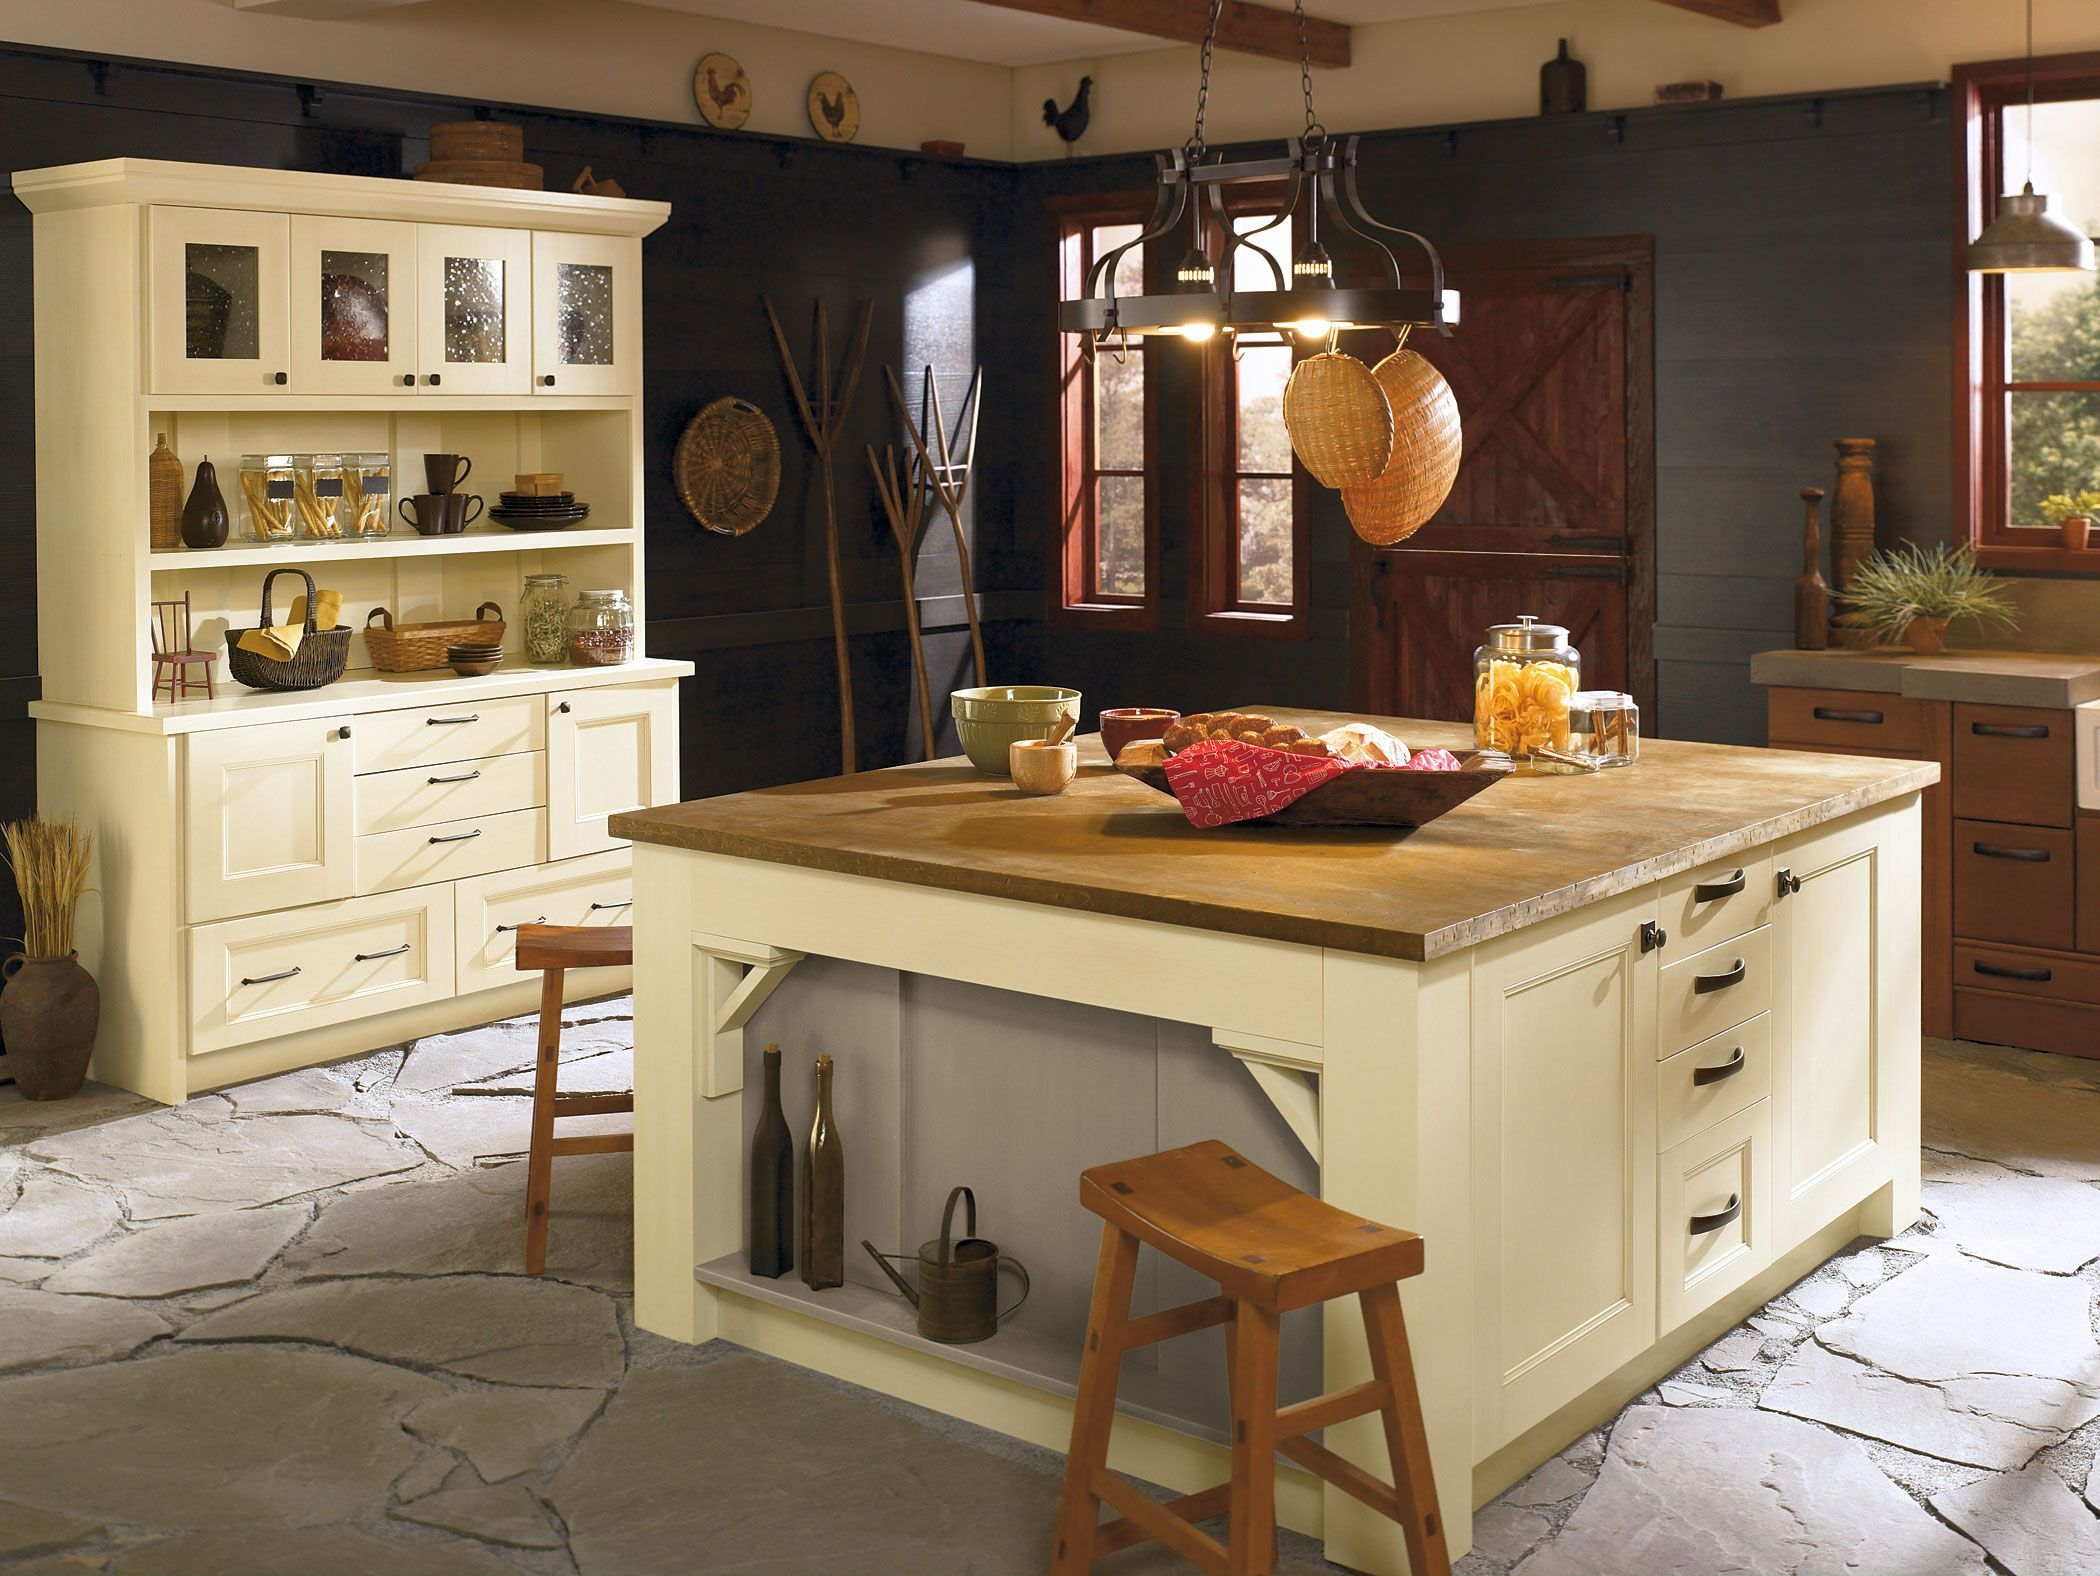 The Tuscan Palomino And Portabello Finishes In Oak Maple With Berkeley Eglin Doors By Kitchen Craft Brings A Modern Country Ambiance To Your